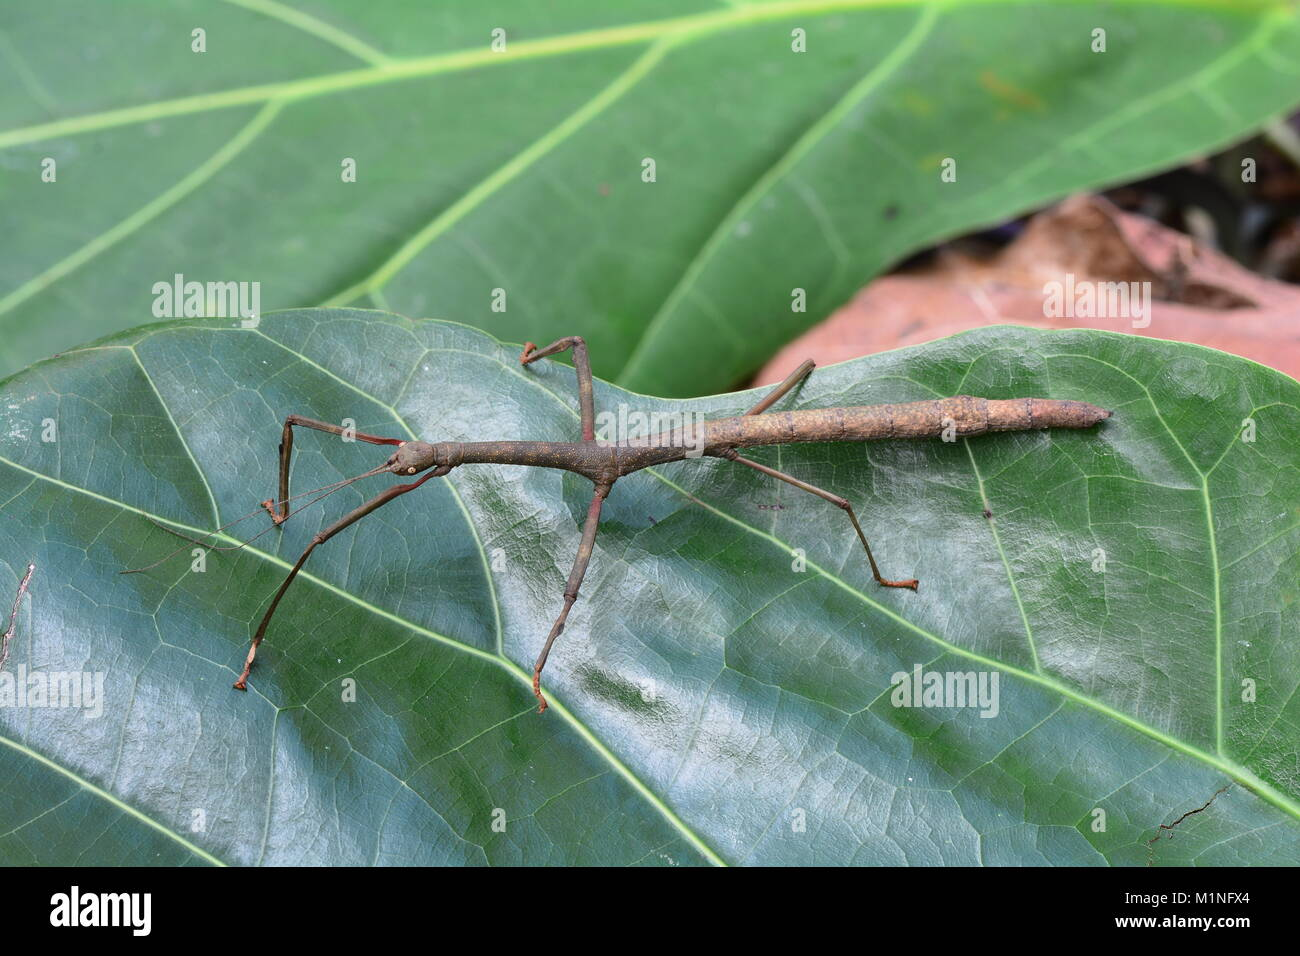 A stick bug sits on a plant leaf in the gardens - Stock Image